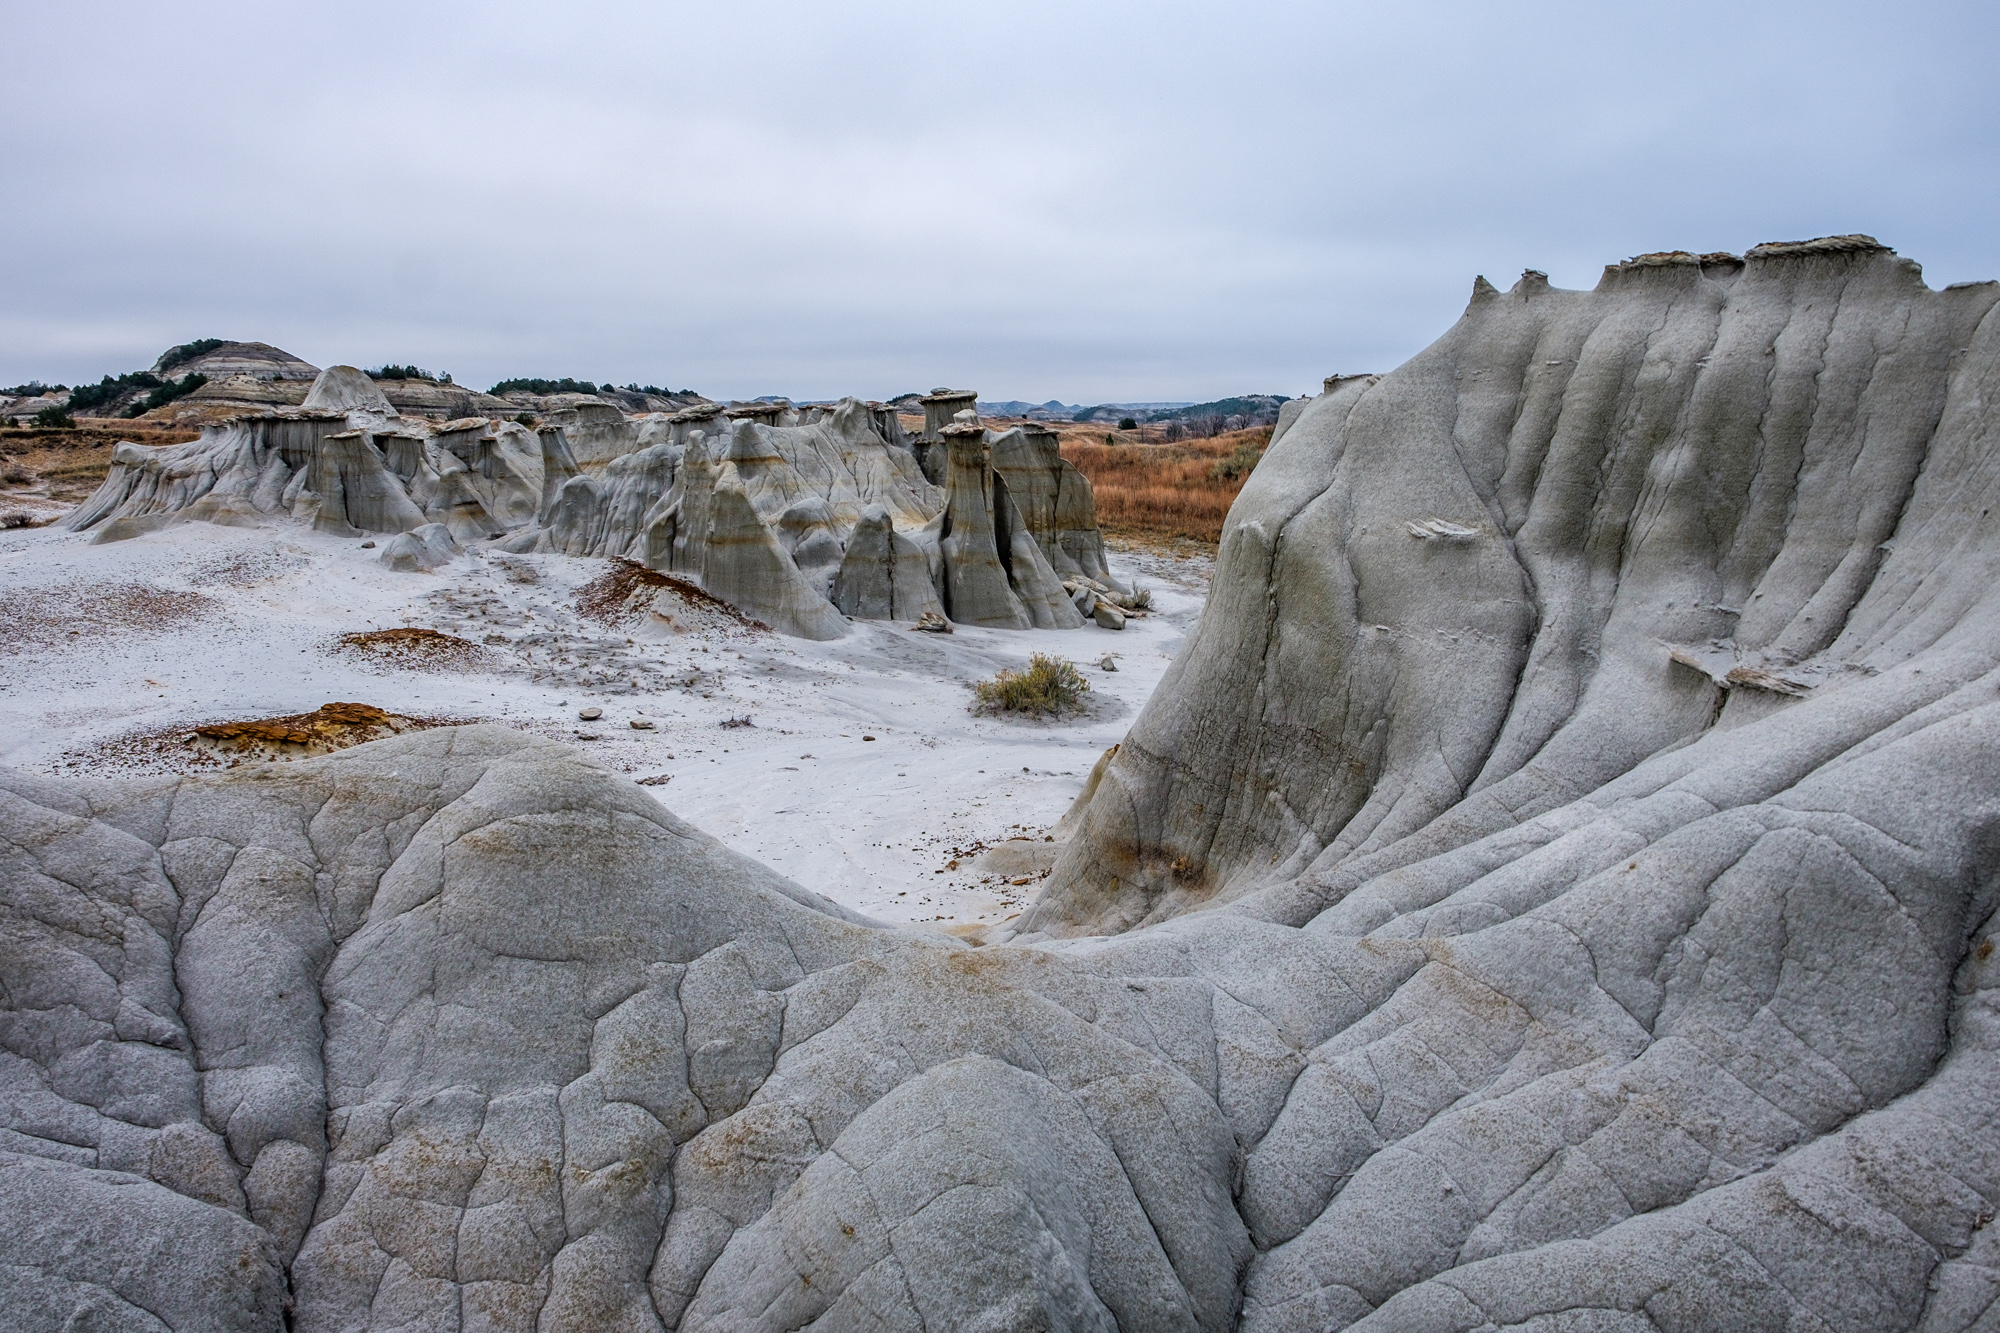 This park also has some fascinating badlands, like the ones in South Dakota.